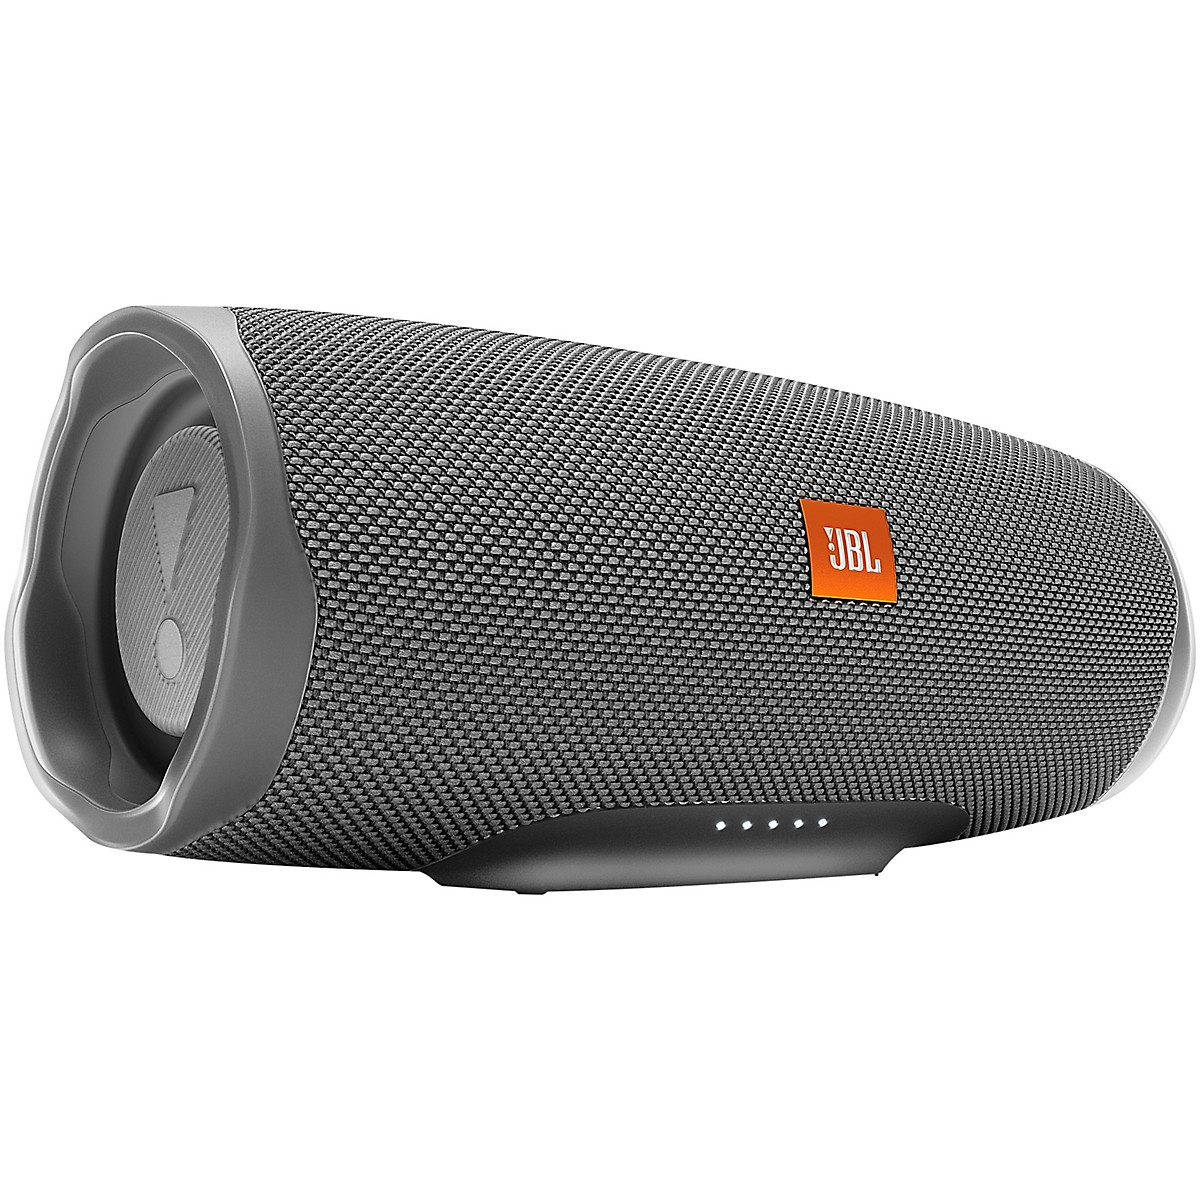 JBL Charge 4 Portable Bluetooth Speaker w/built in battery, IPX7, and USB charge out